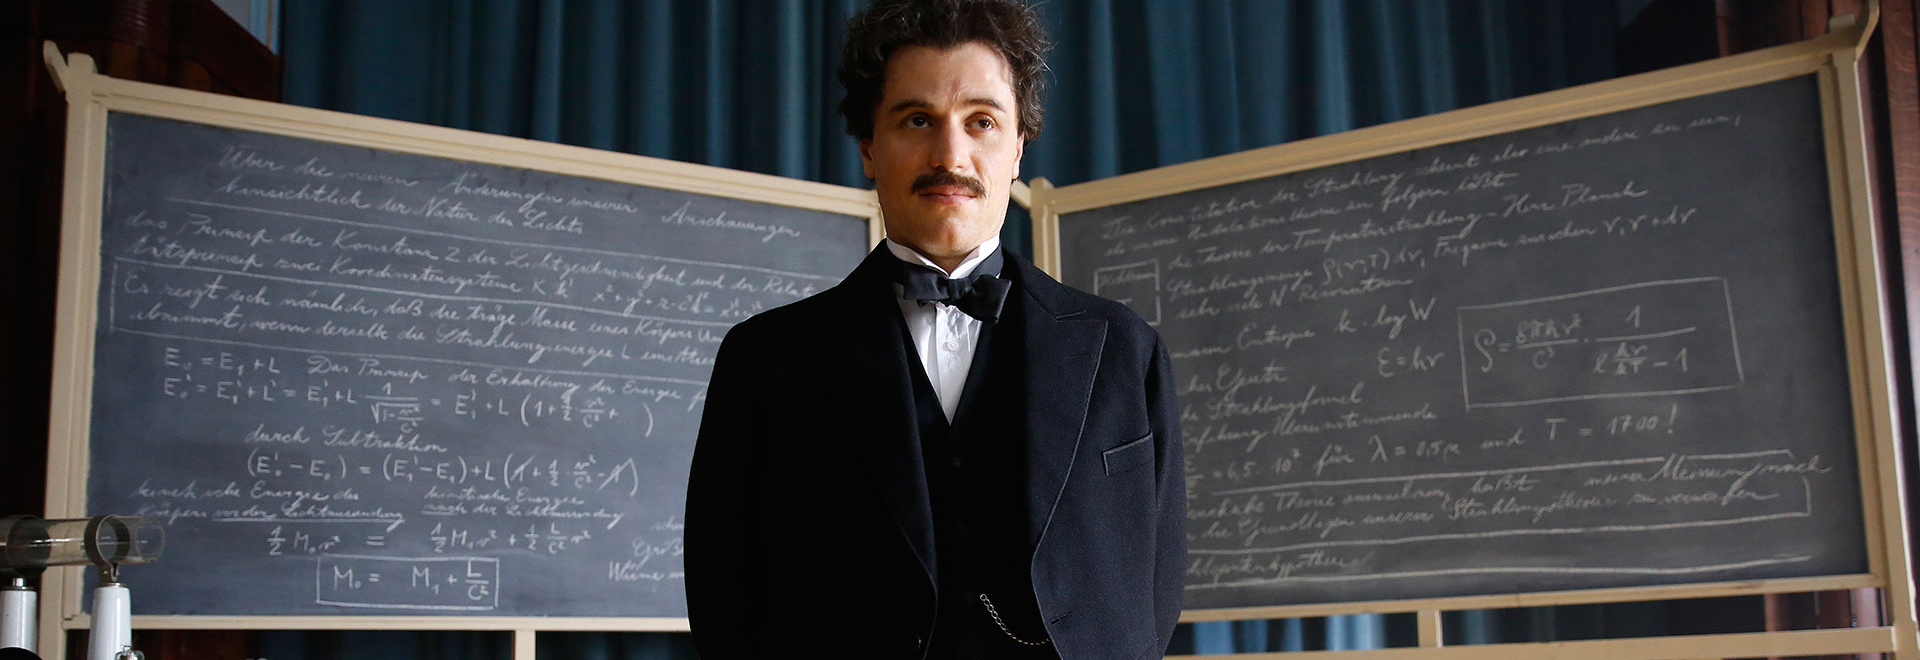 Genius: The Complete First Season - A fascinating portrait of Albert Einstein on DVD